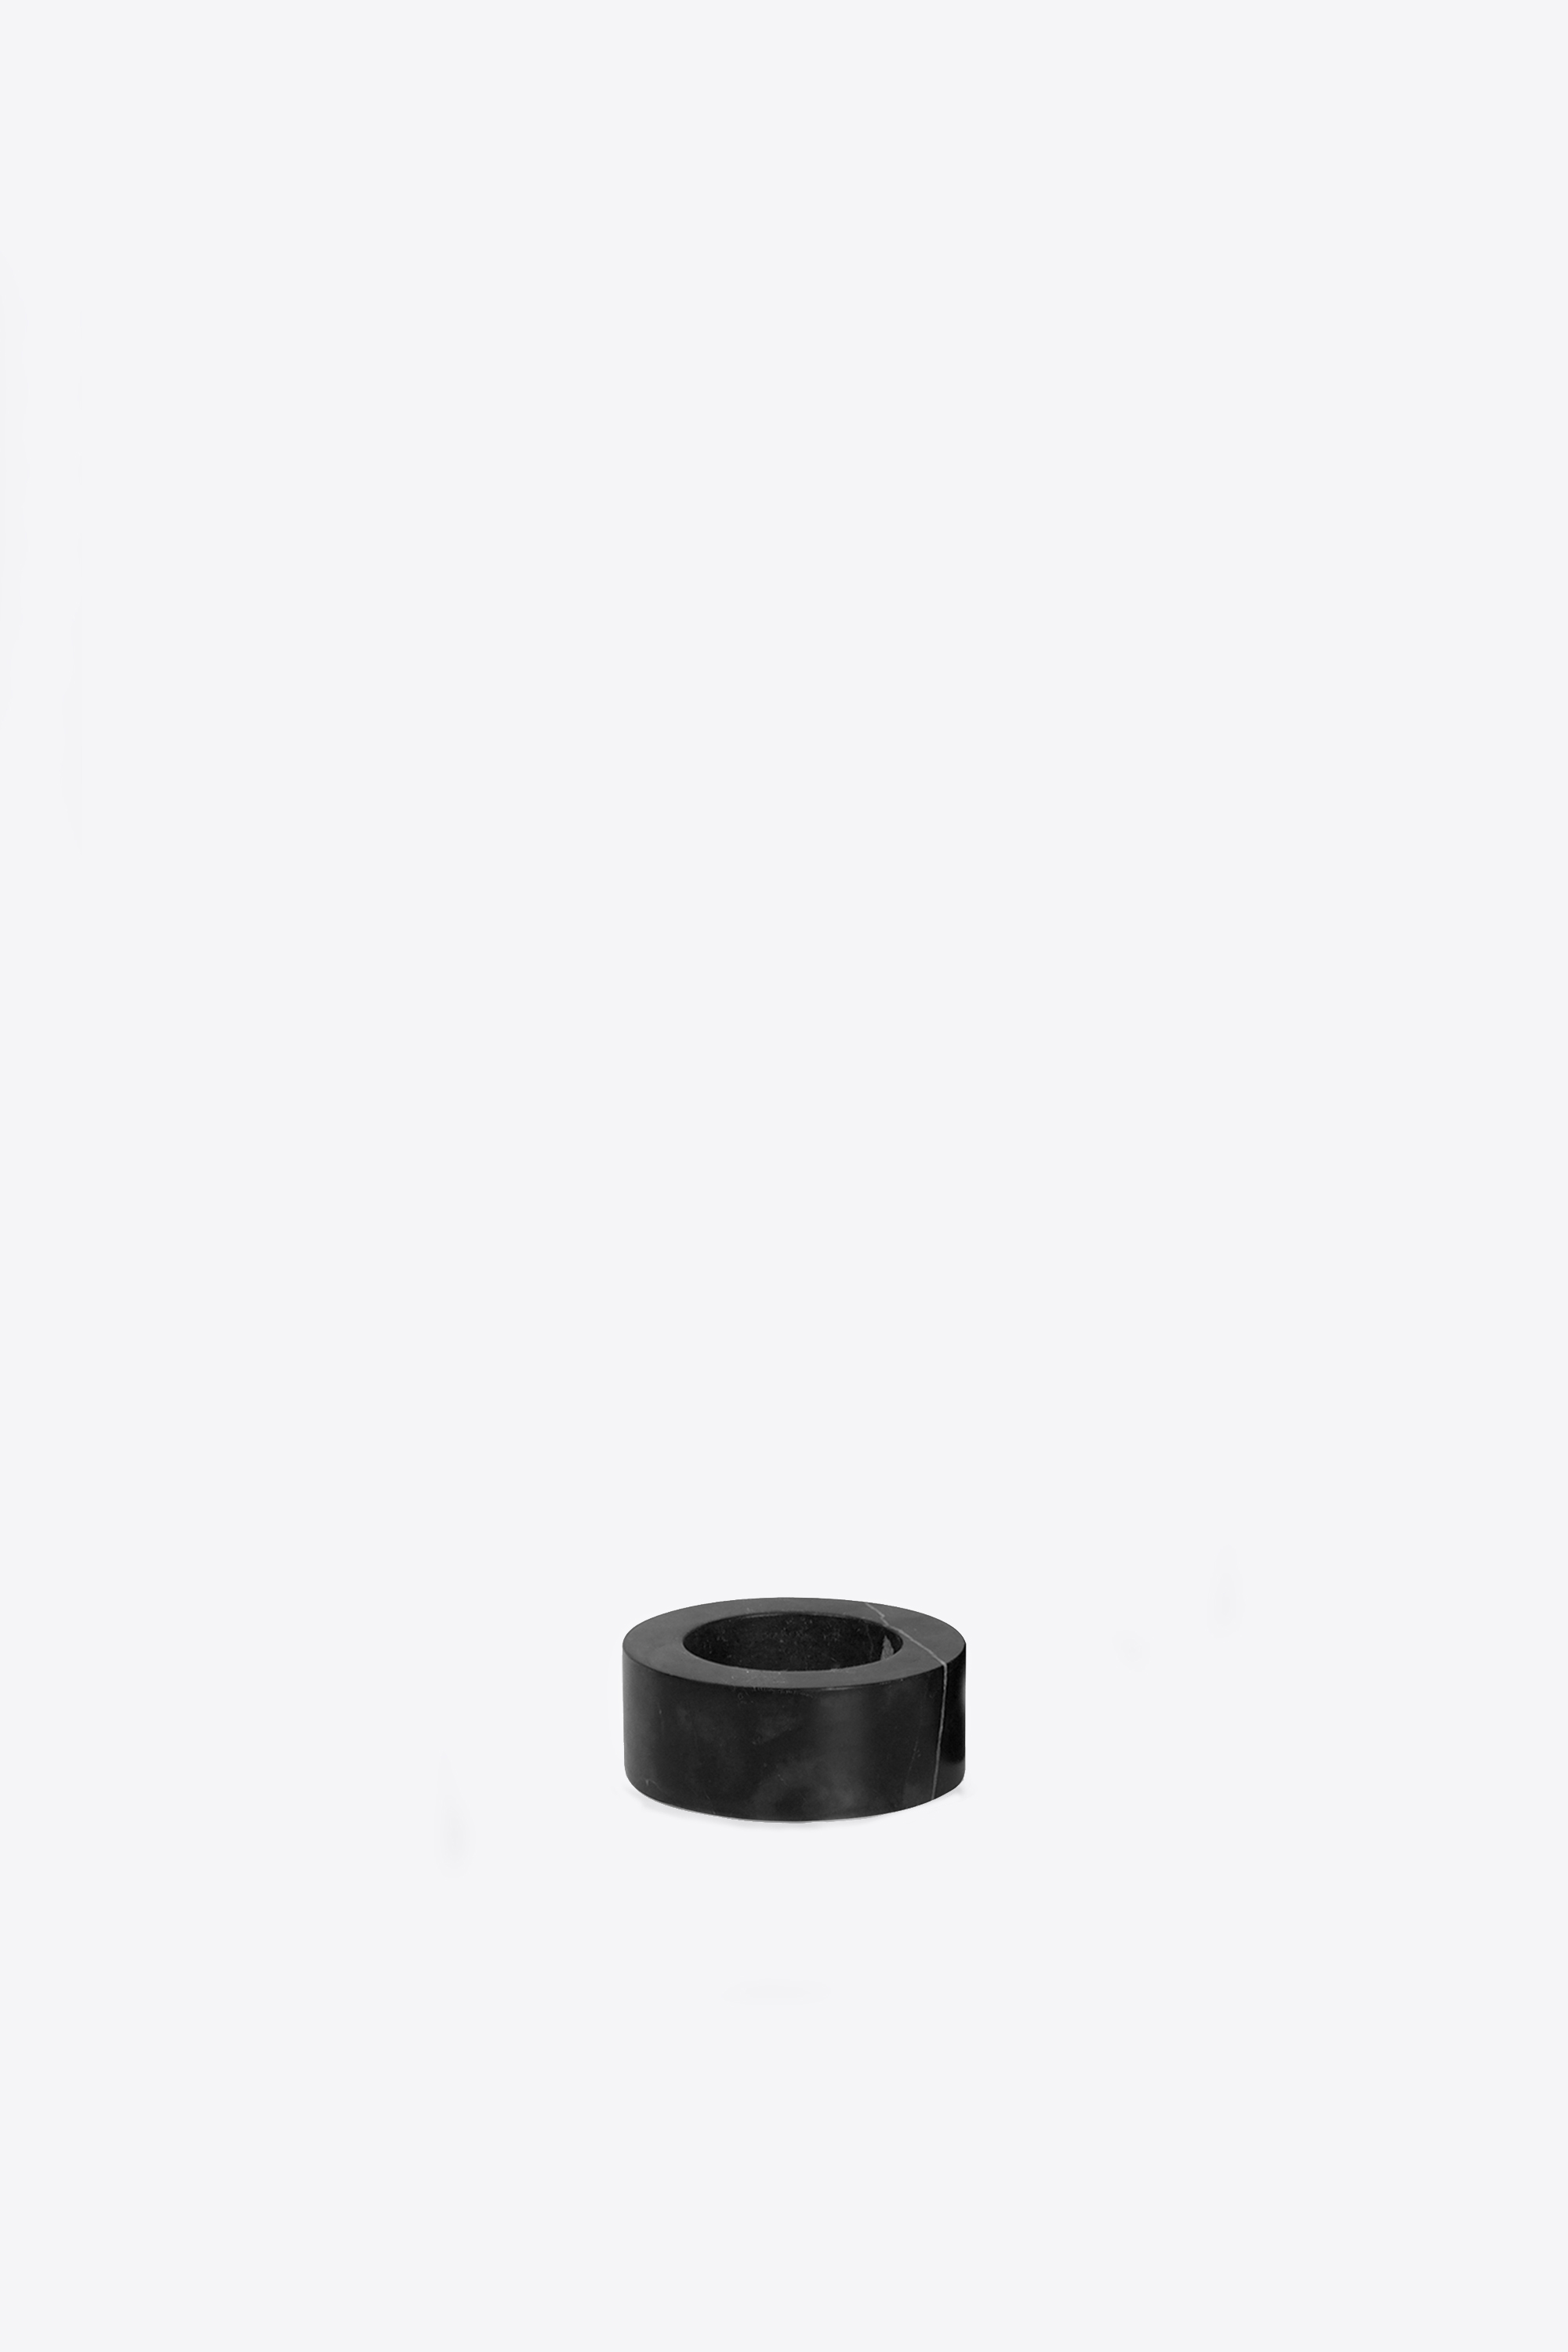 Tealight Candle Holder 1875 Black 3